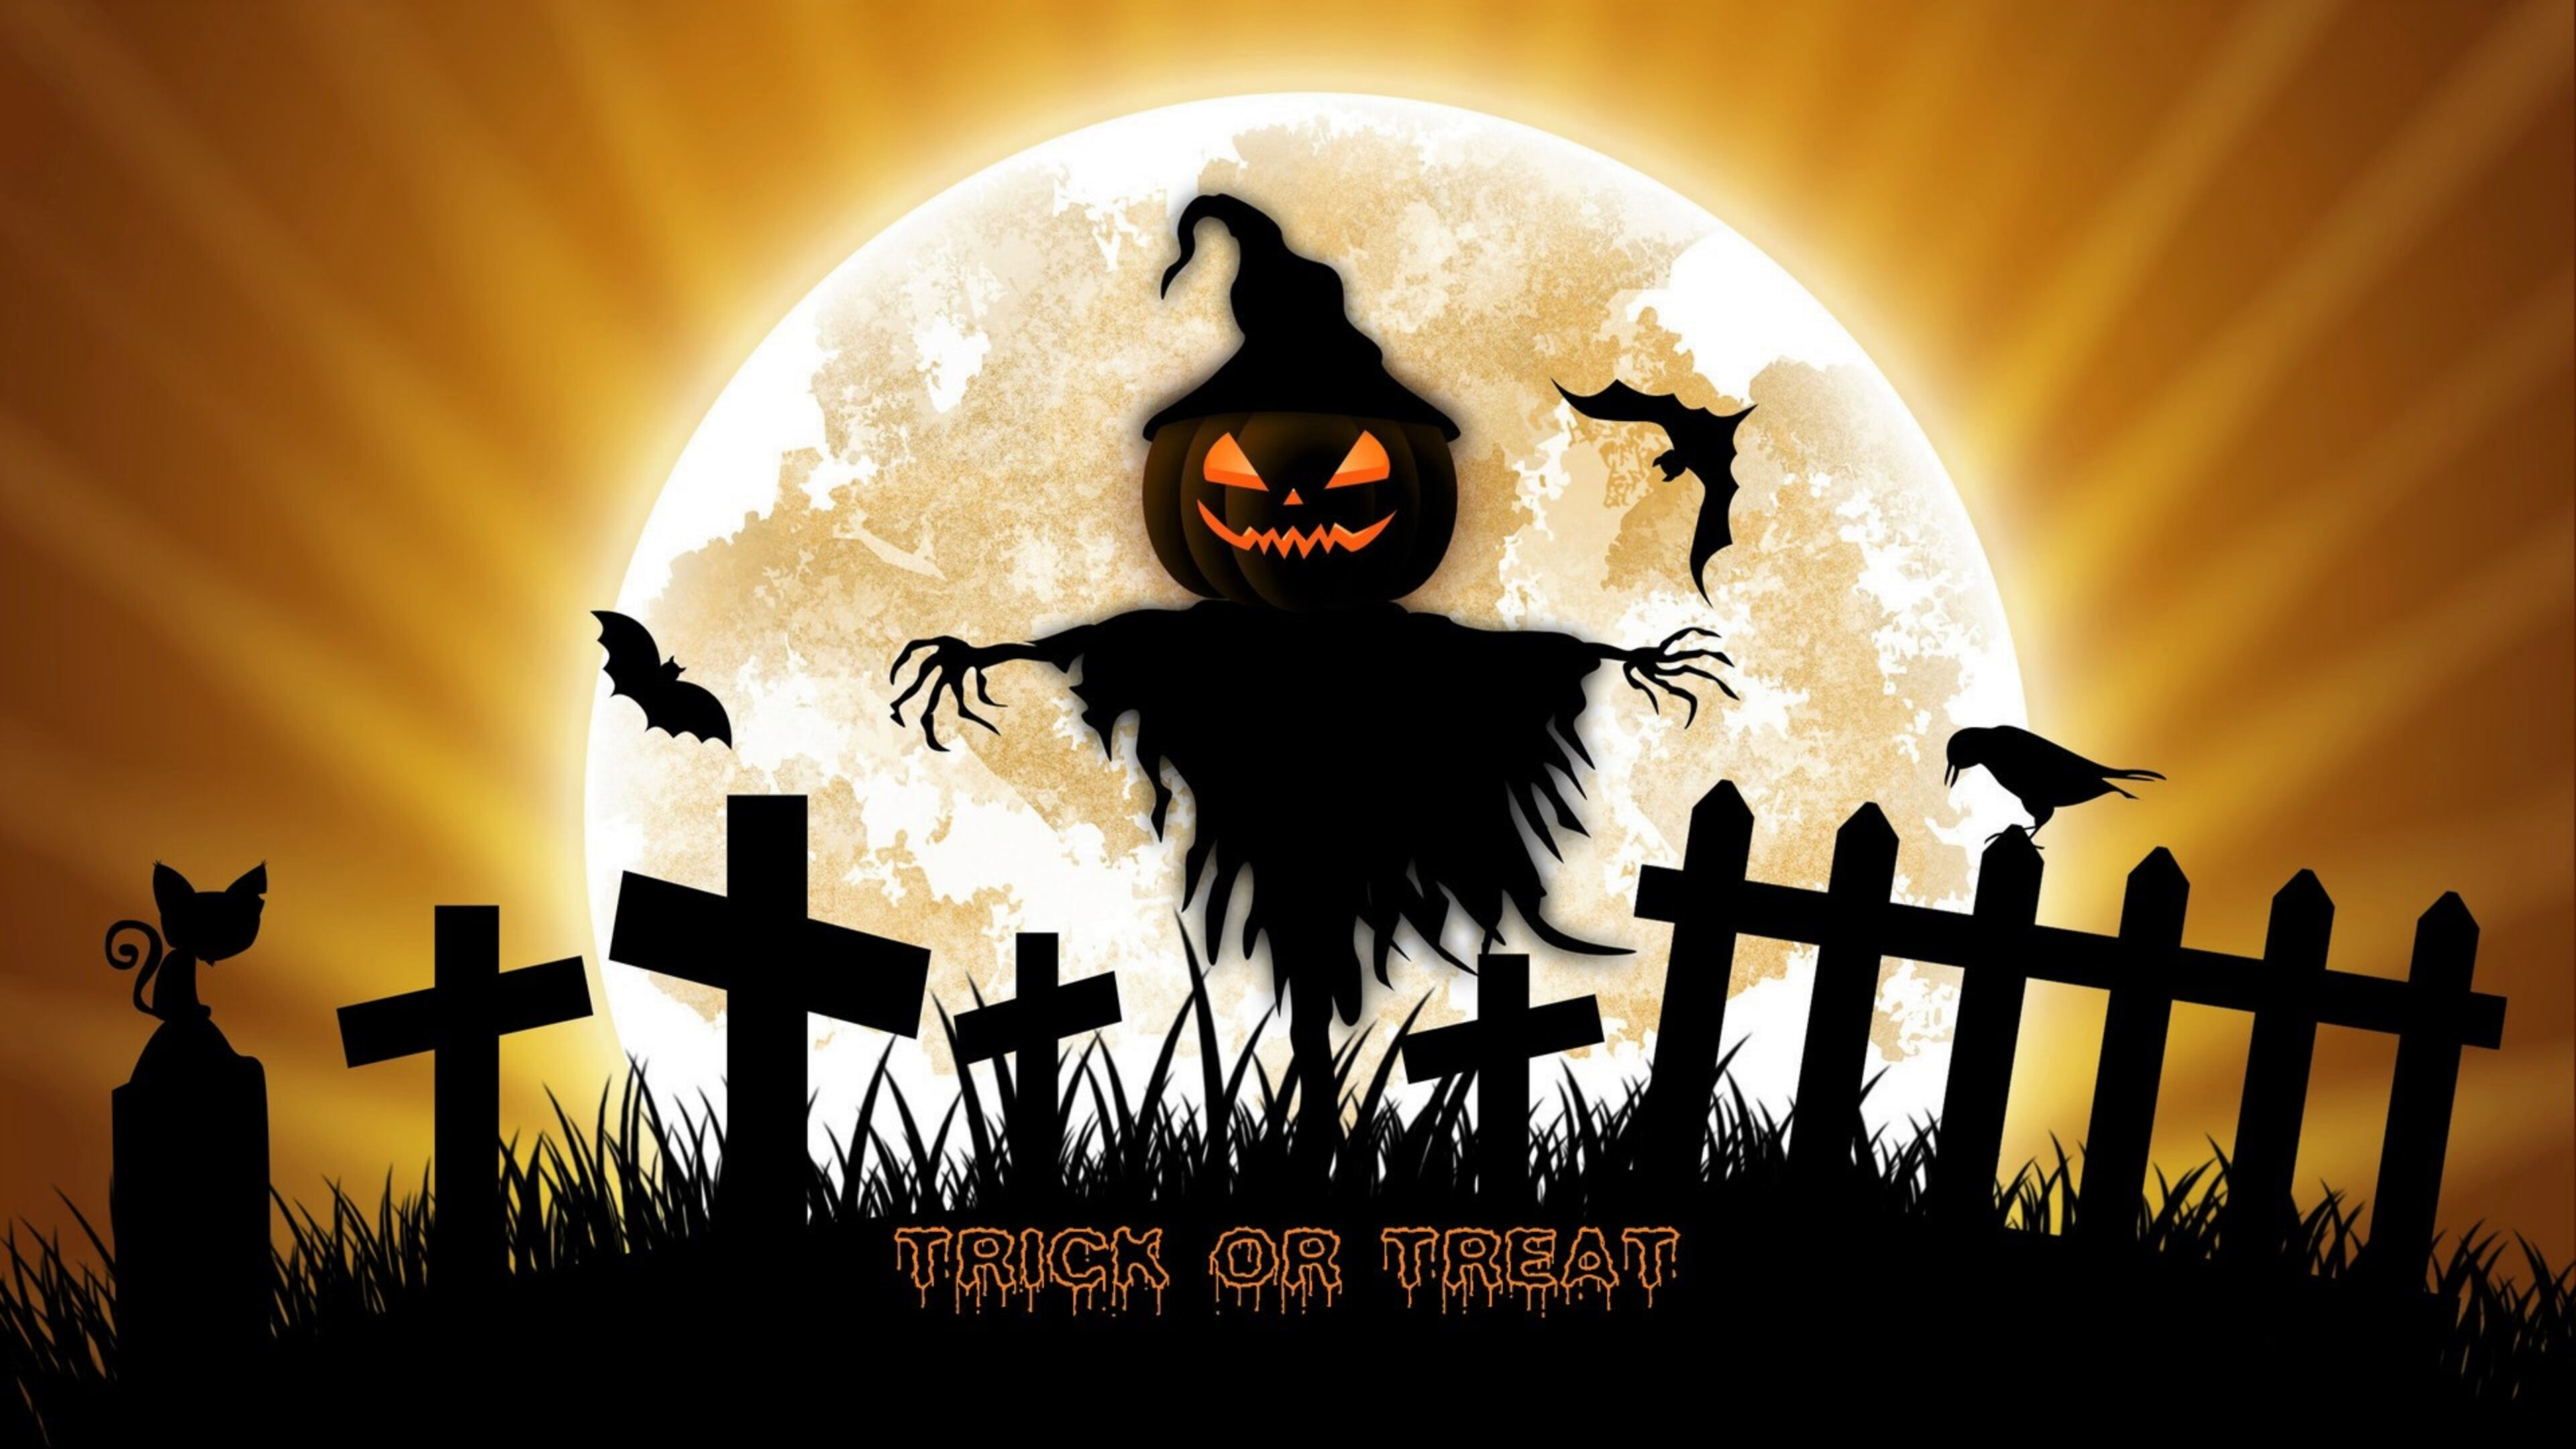 bat-fence-halloween-holiday-scarecrow-2t.jpg